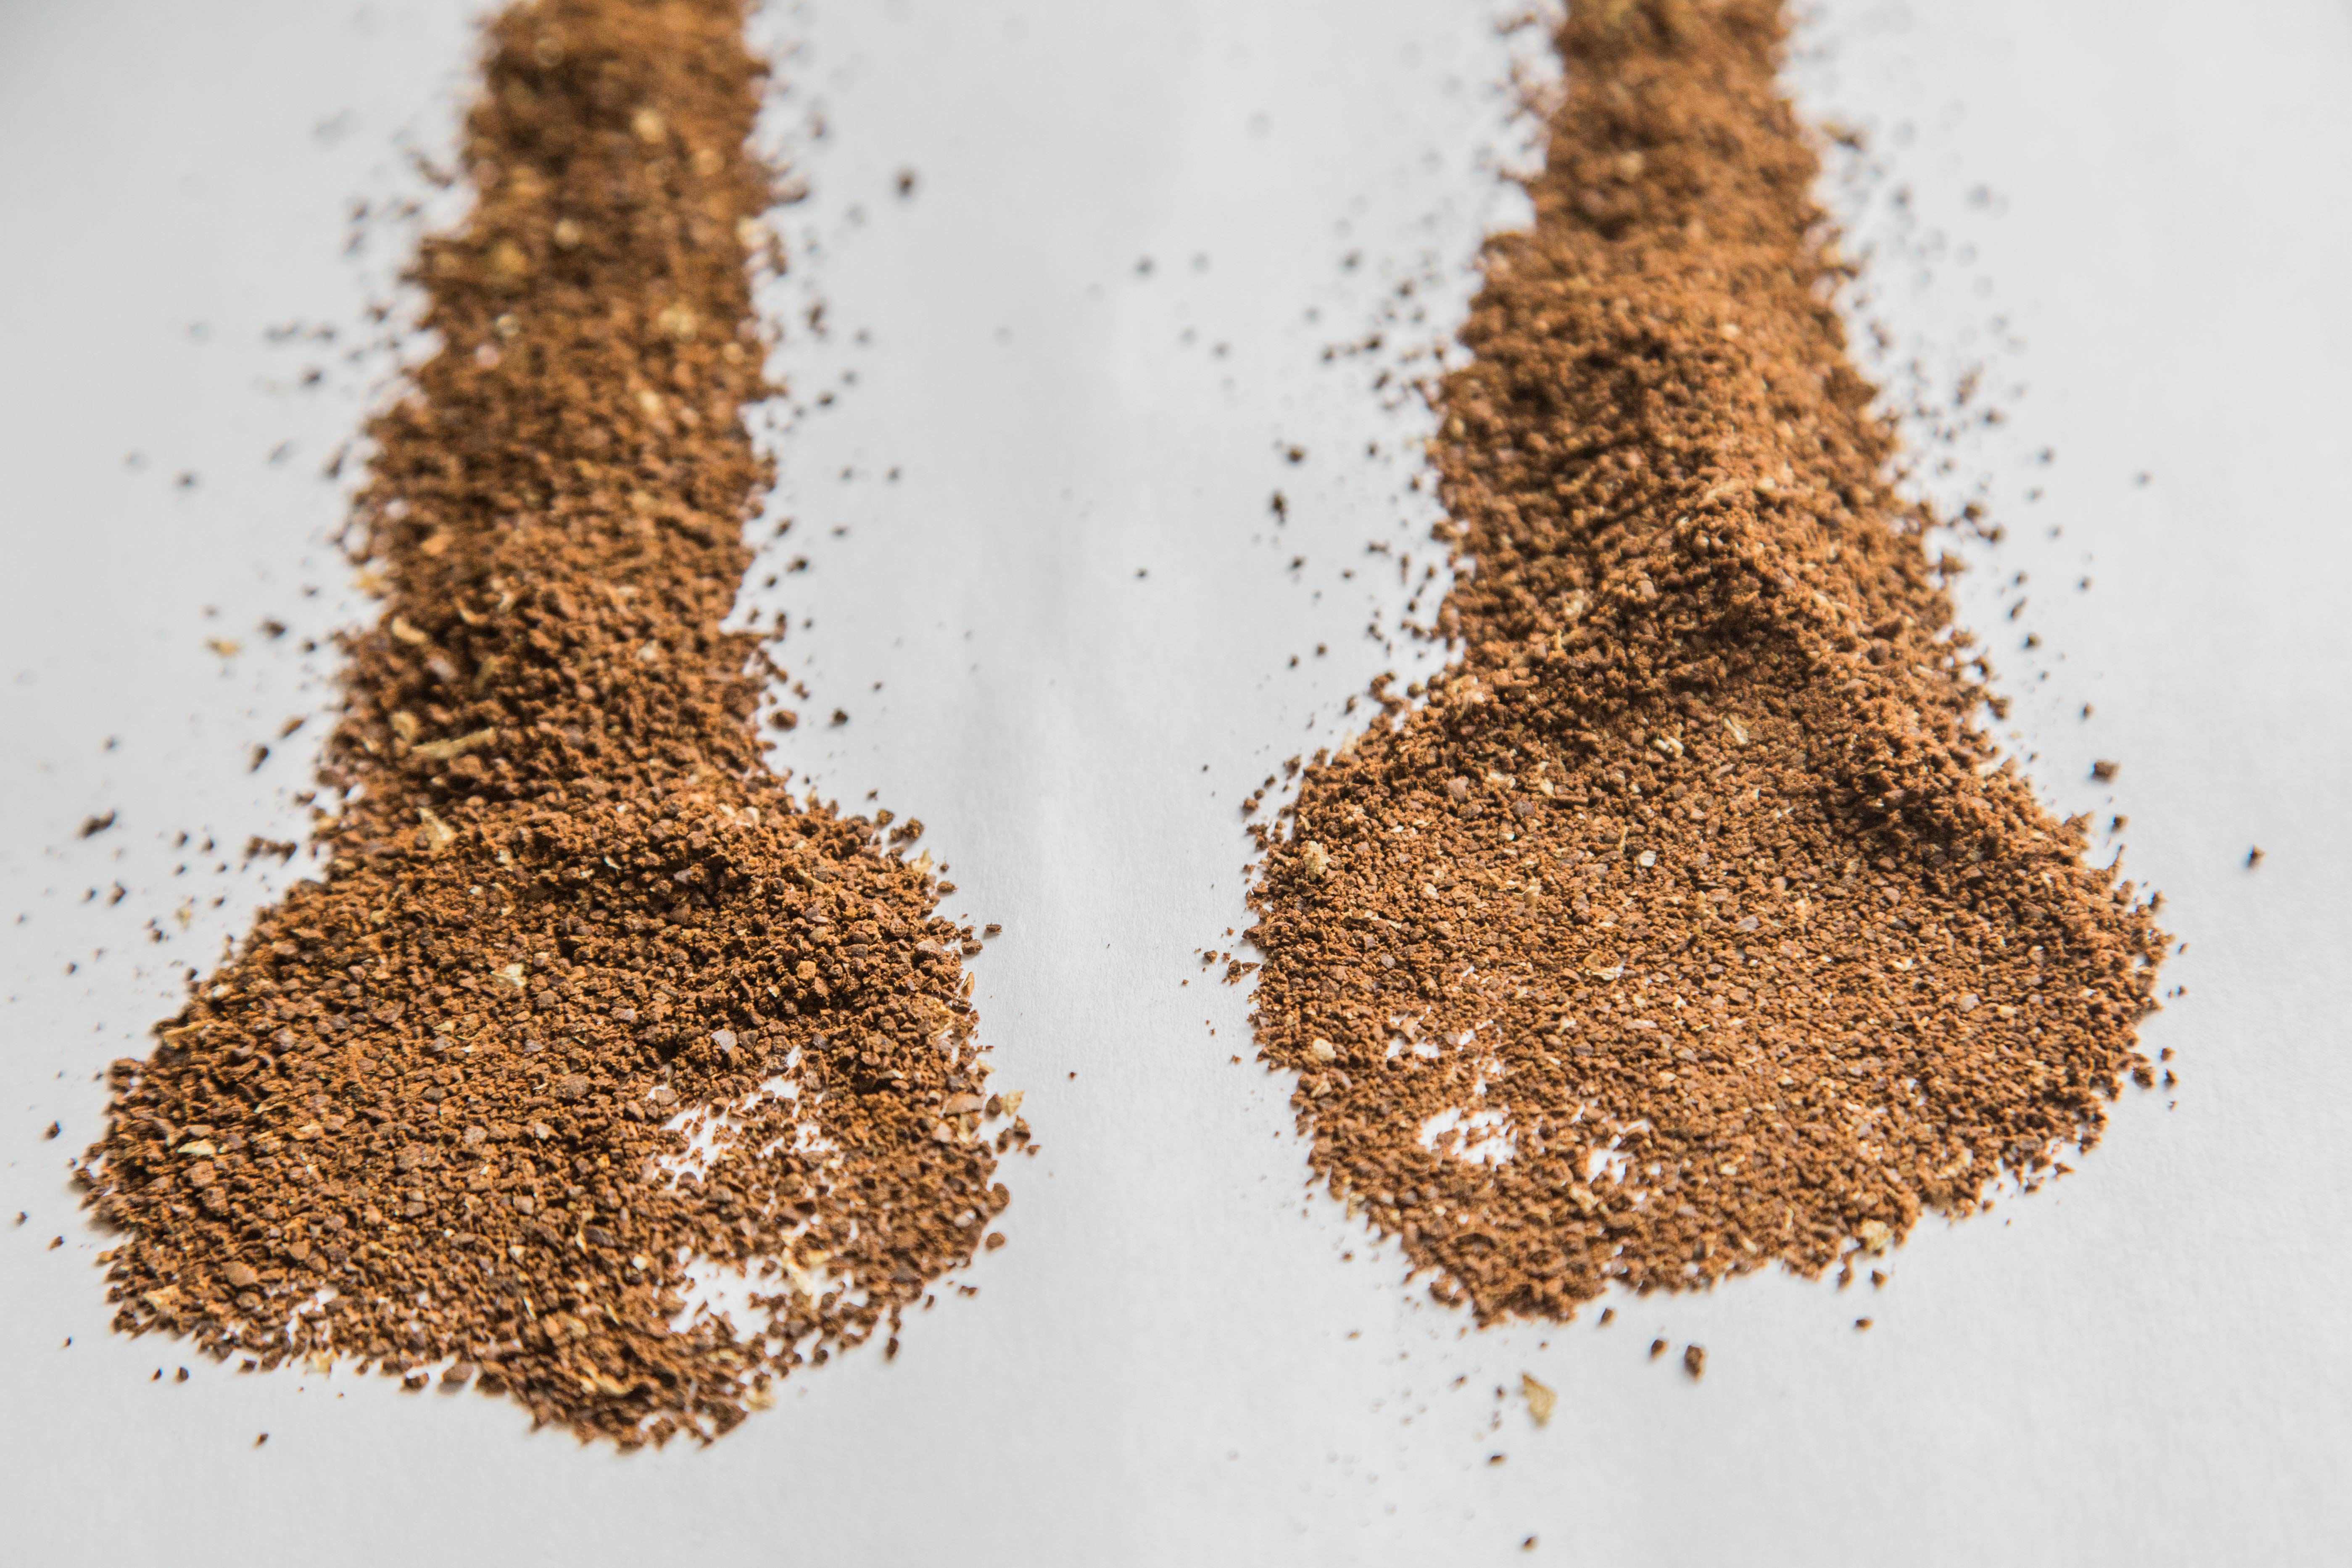 On the left is a medium grind setting on a false burr grinder, showing a large range of particle sizes. On the right is a medium grind from a mid-range conical burr, which shows some fines but much more overall uniformity.